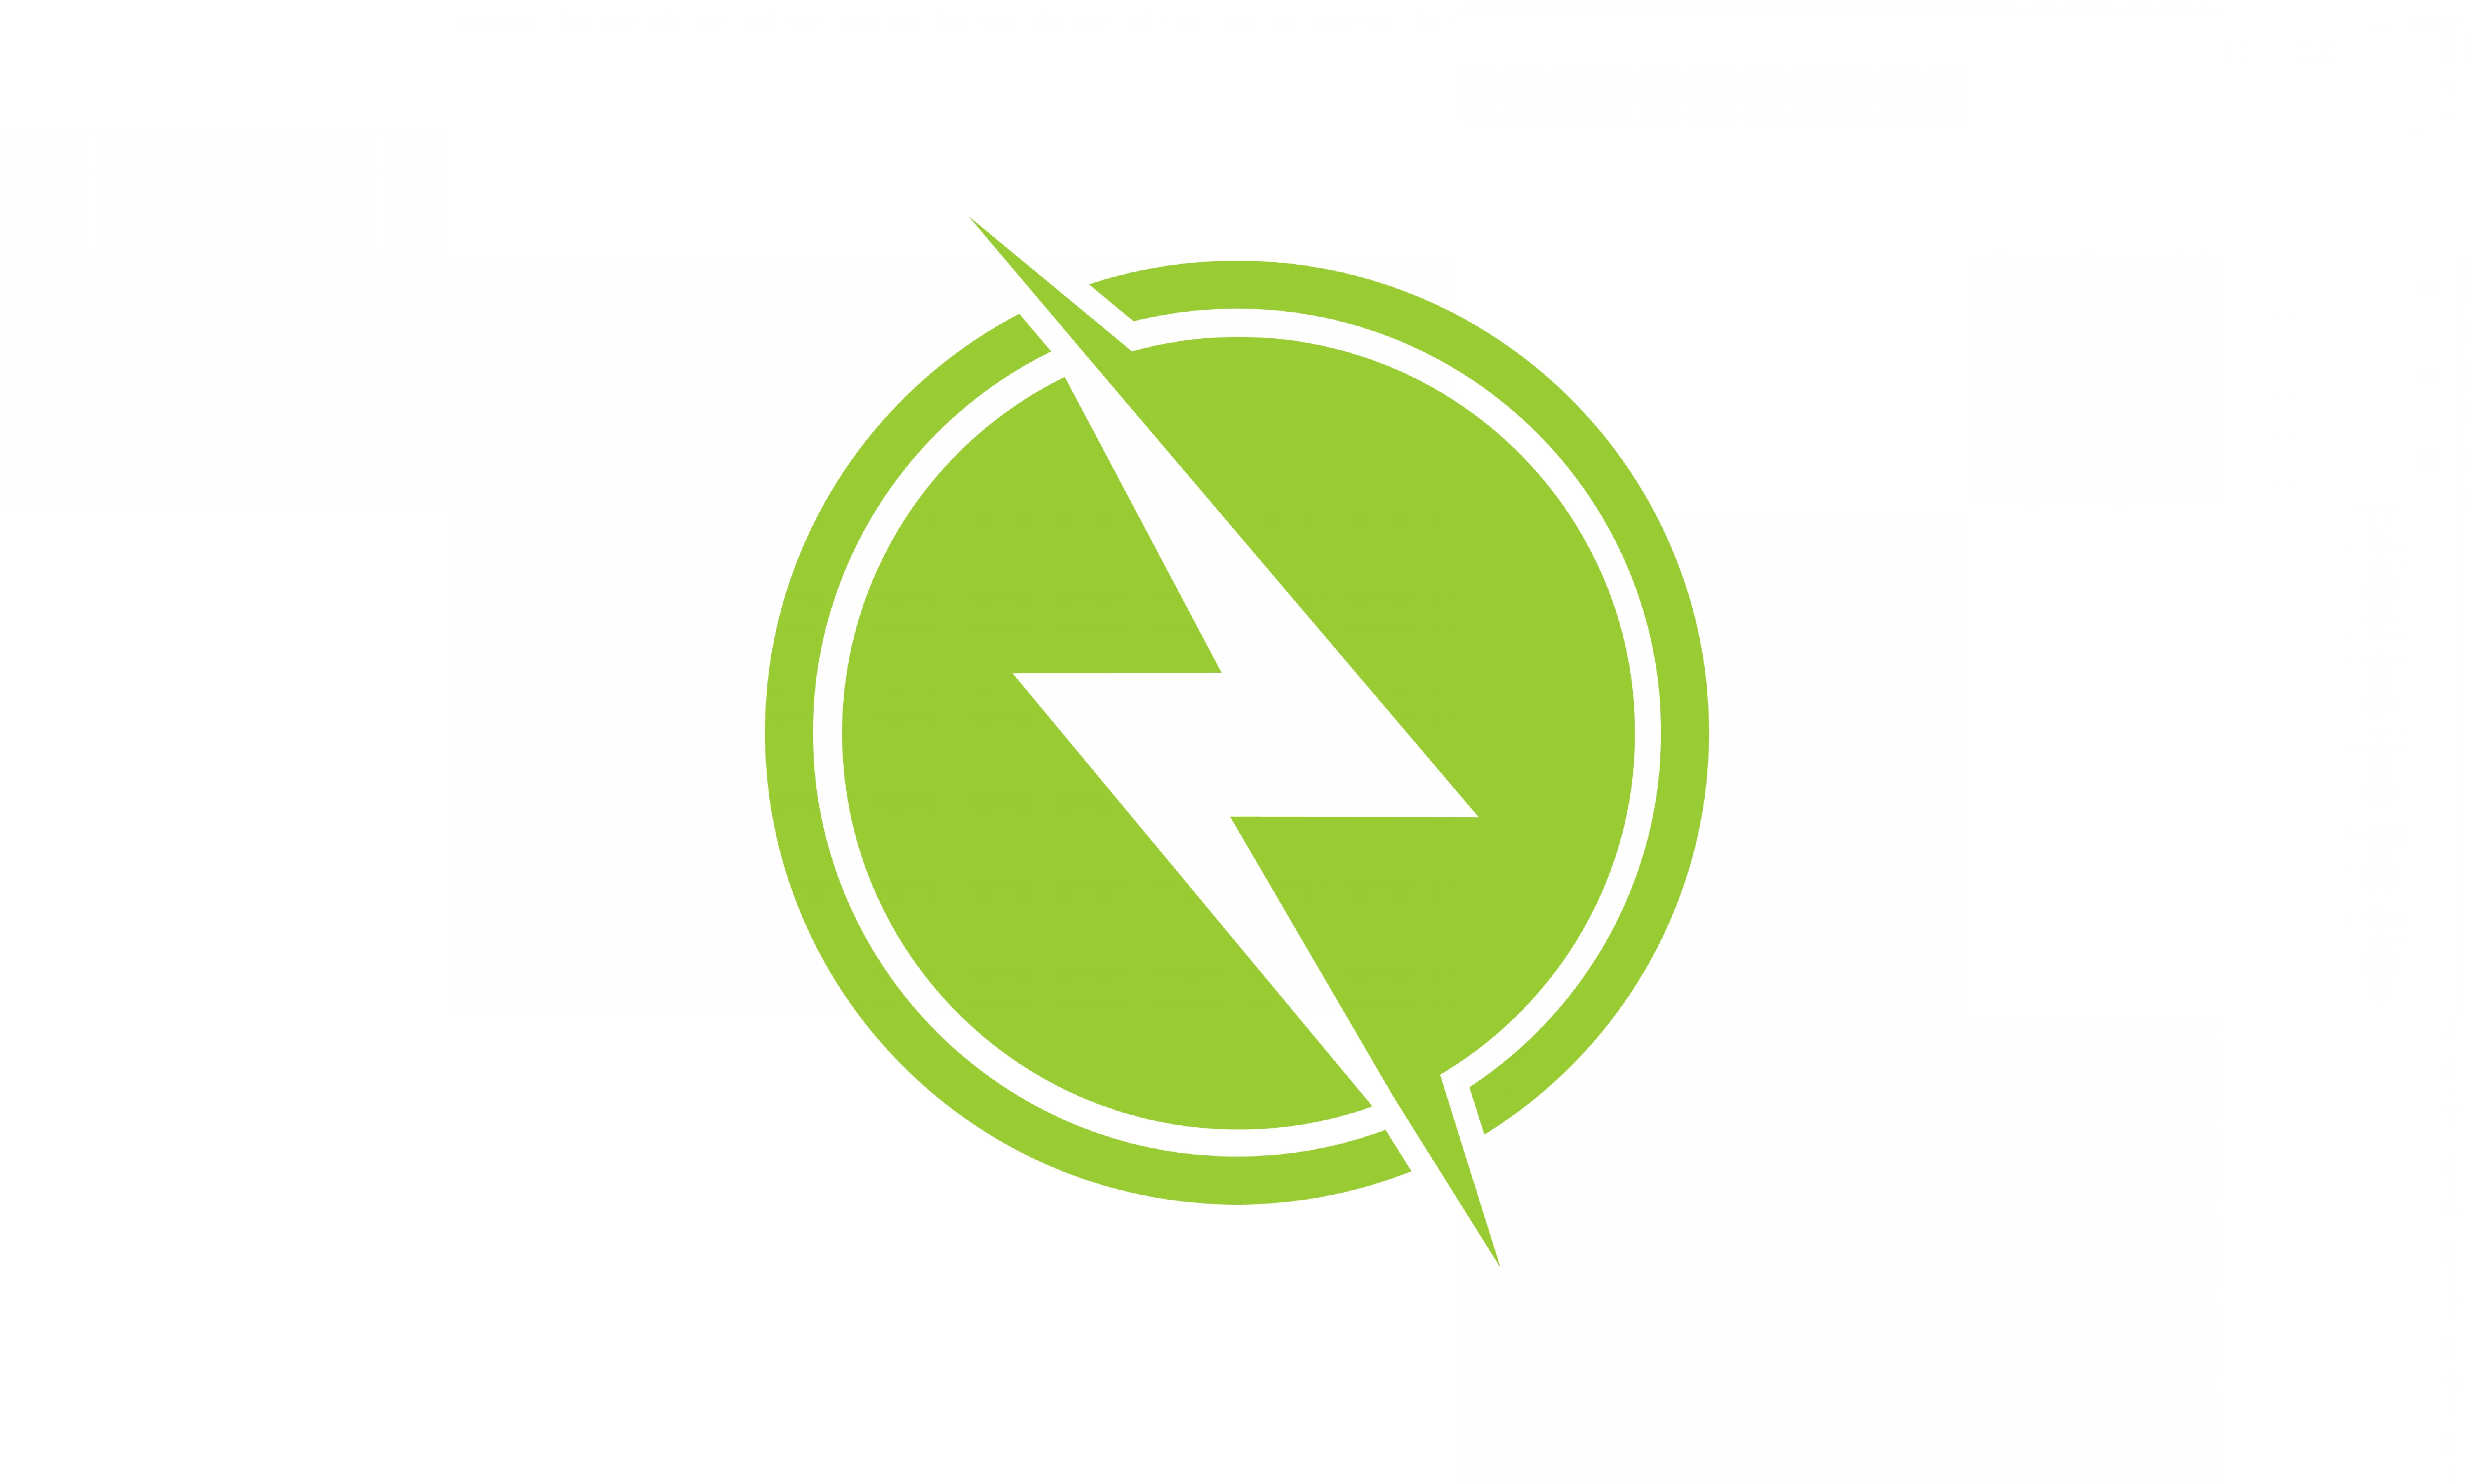 Electricity Logo Vector Graphic Abstract Template.